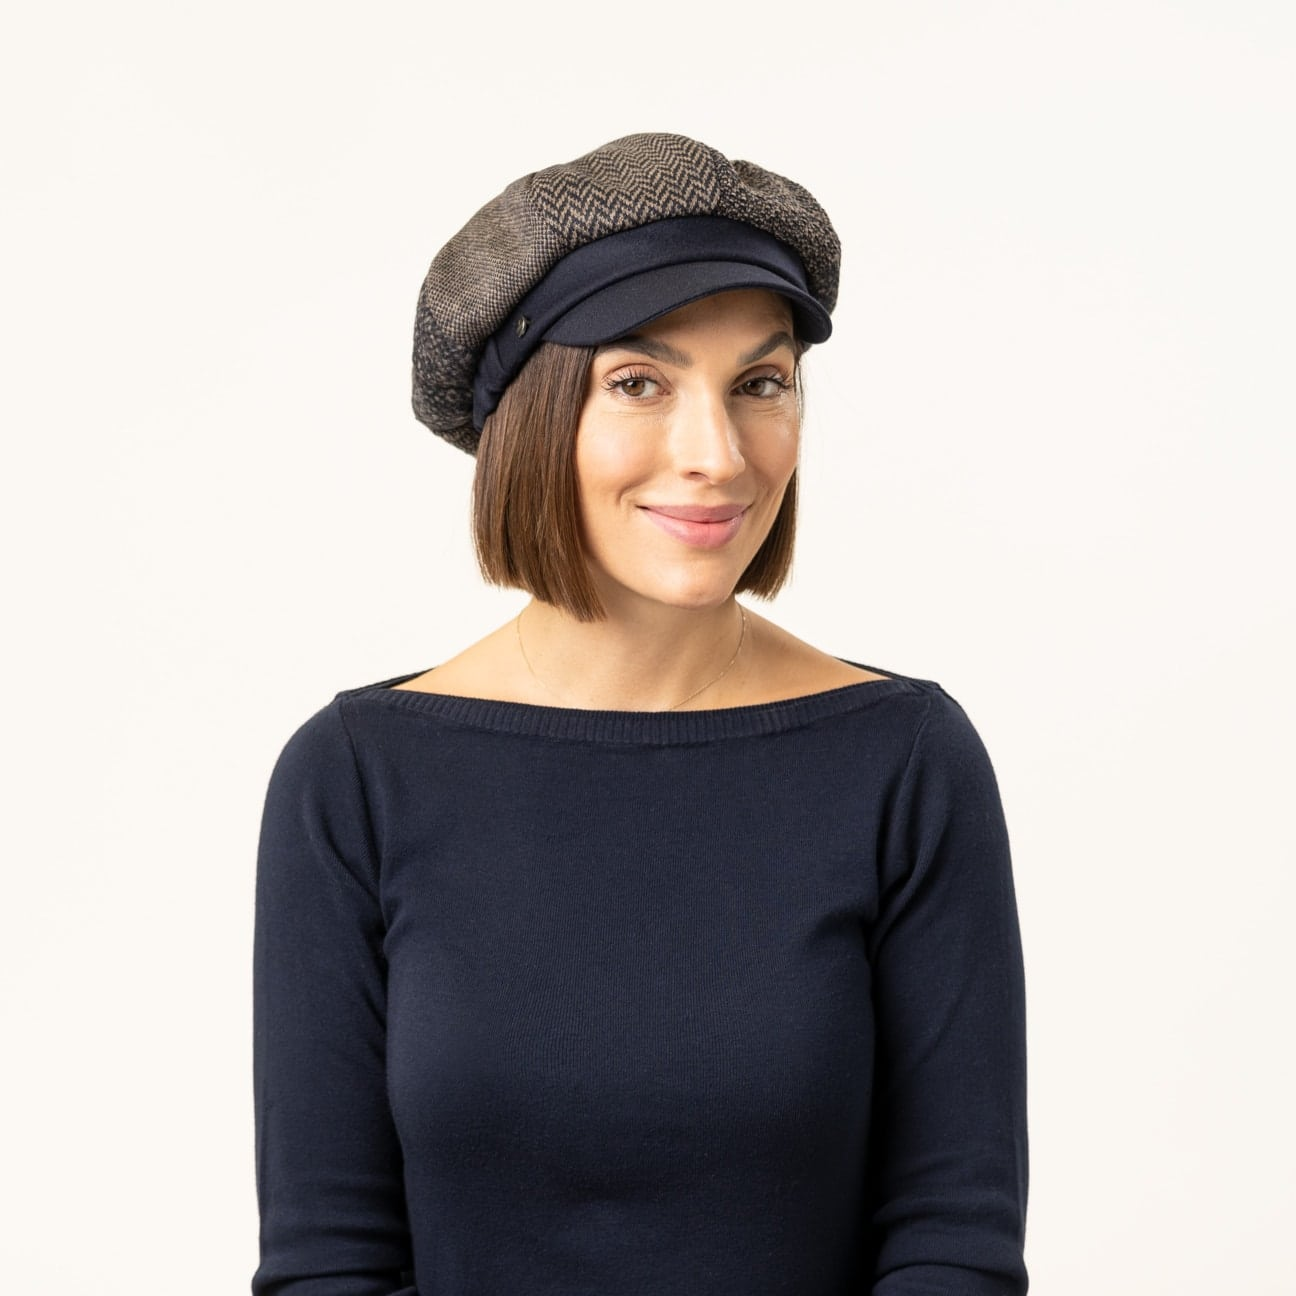 wholesale outlet outlet on sale best service Casquette Gavroche Style-Mix by Lierys